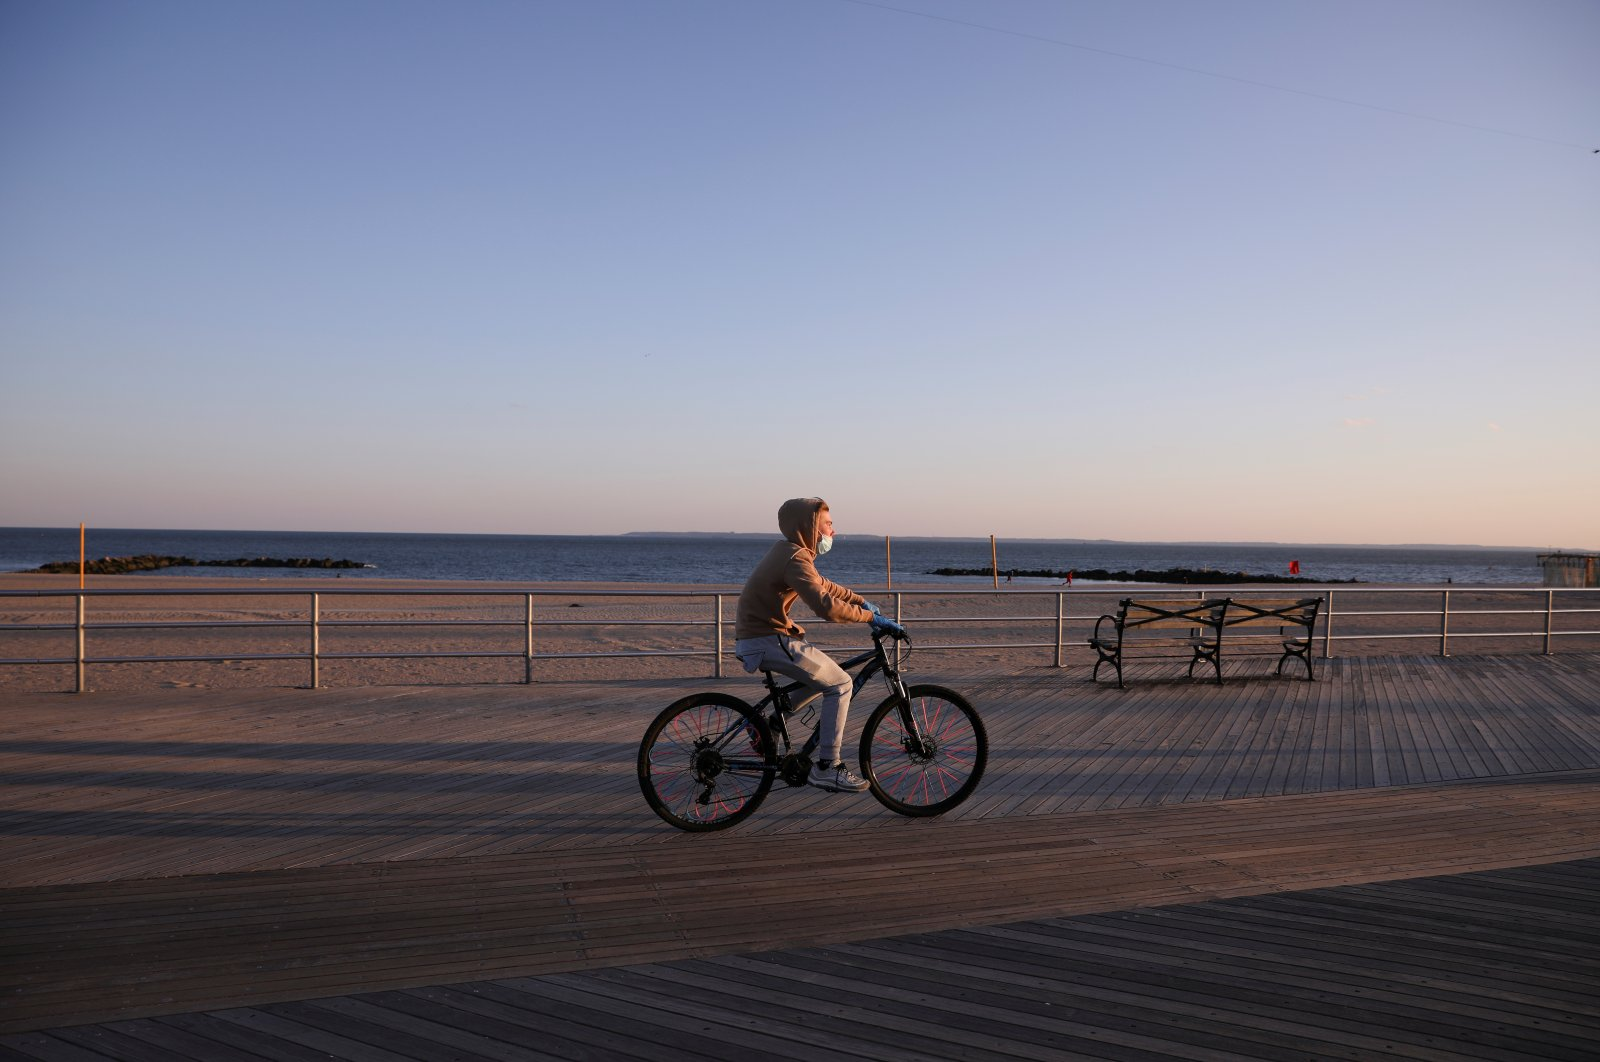 A bicyclist wears a mask and cycles along the mostly empty Coney Island boardwalk, Brooklyn, New York, U.S., April 11, 2020. (REUTERS Photo)